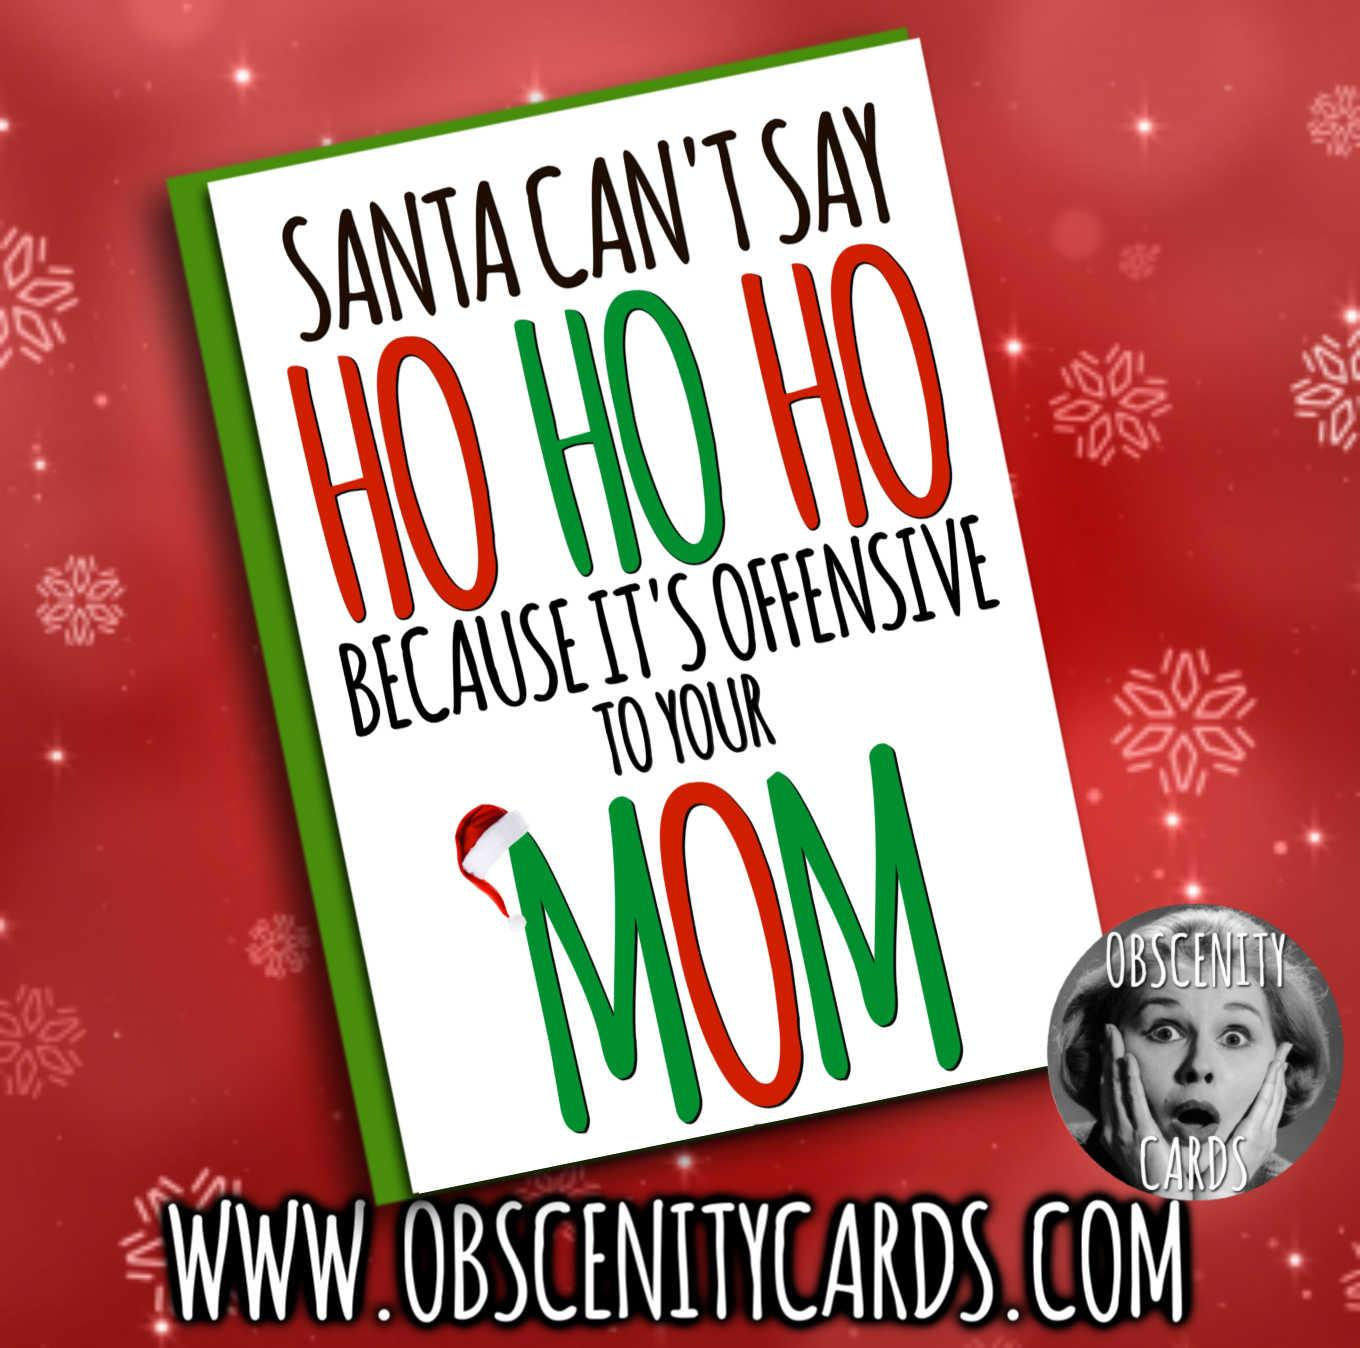 SANTA CAN'T SAY HO HO HO BECAUSE IT'S OFFENSIVE TOU YOUR MOM CHRISTMAS CARD